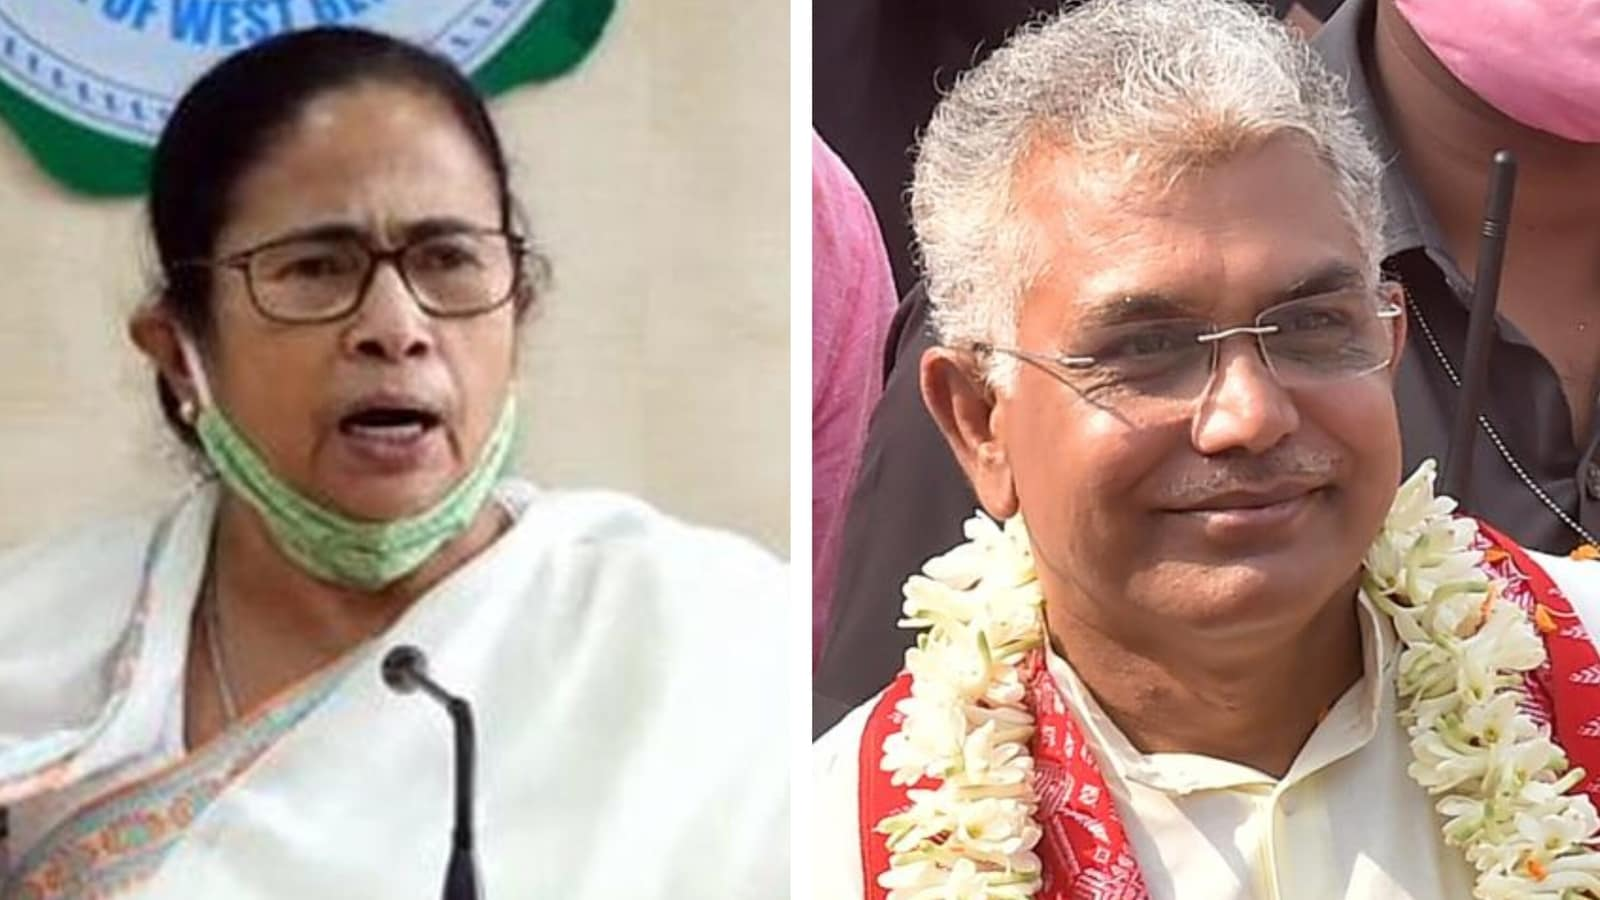 Bengal BJP chief Dilip Ghosh says 'we're ready' ahead of Bhabanipur bypolls